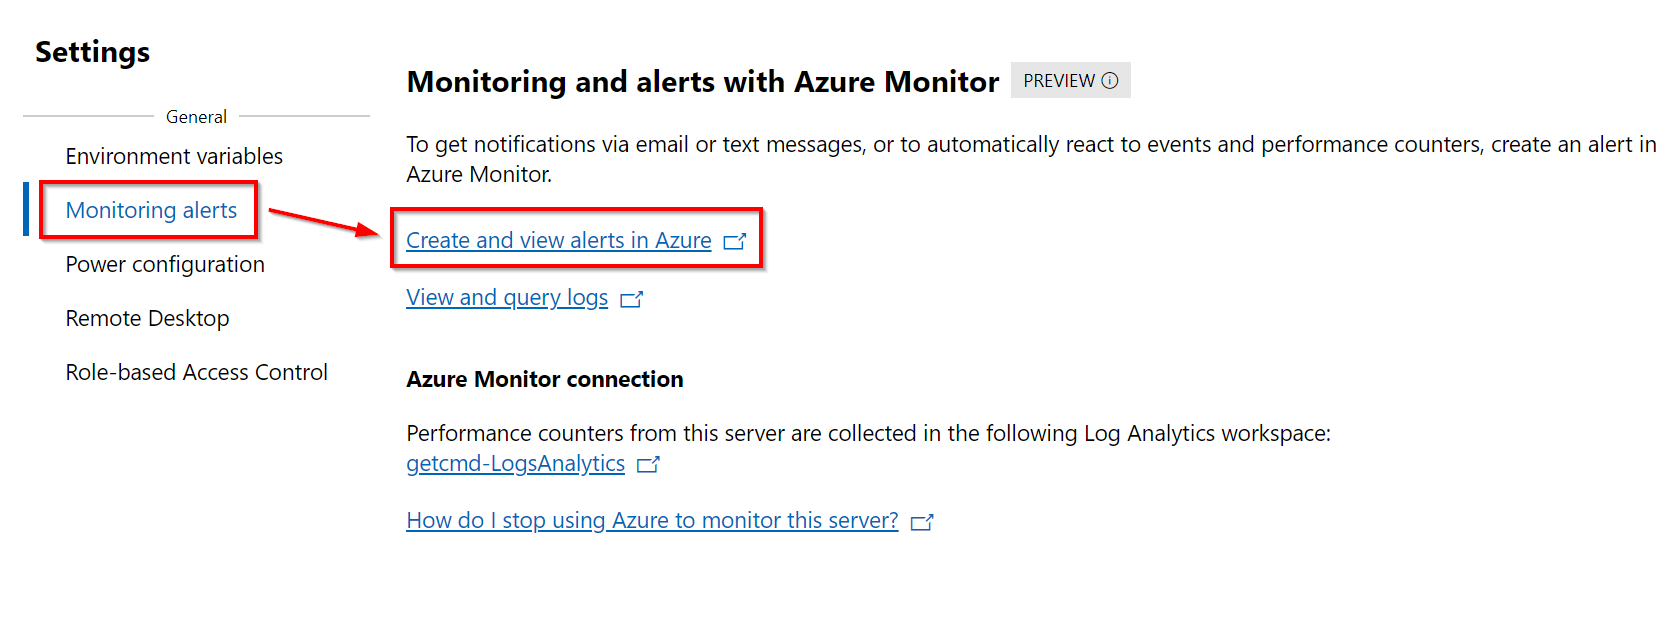 Create and view alerts in Azure